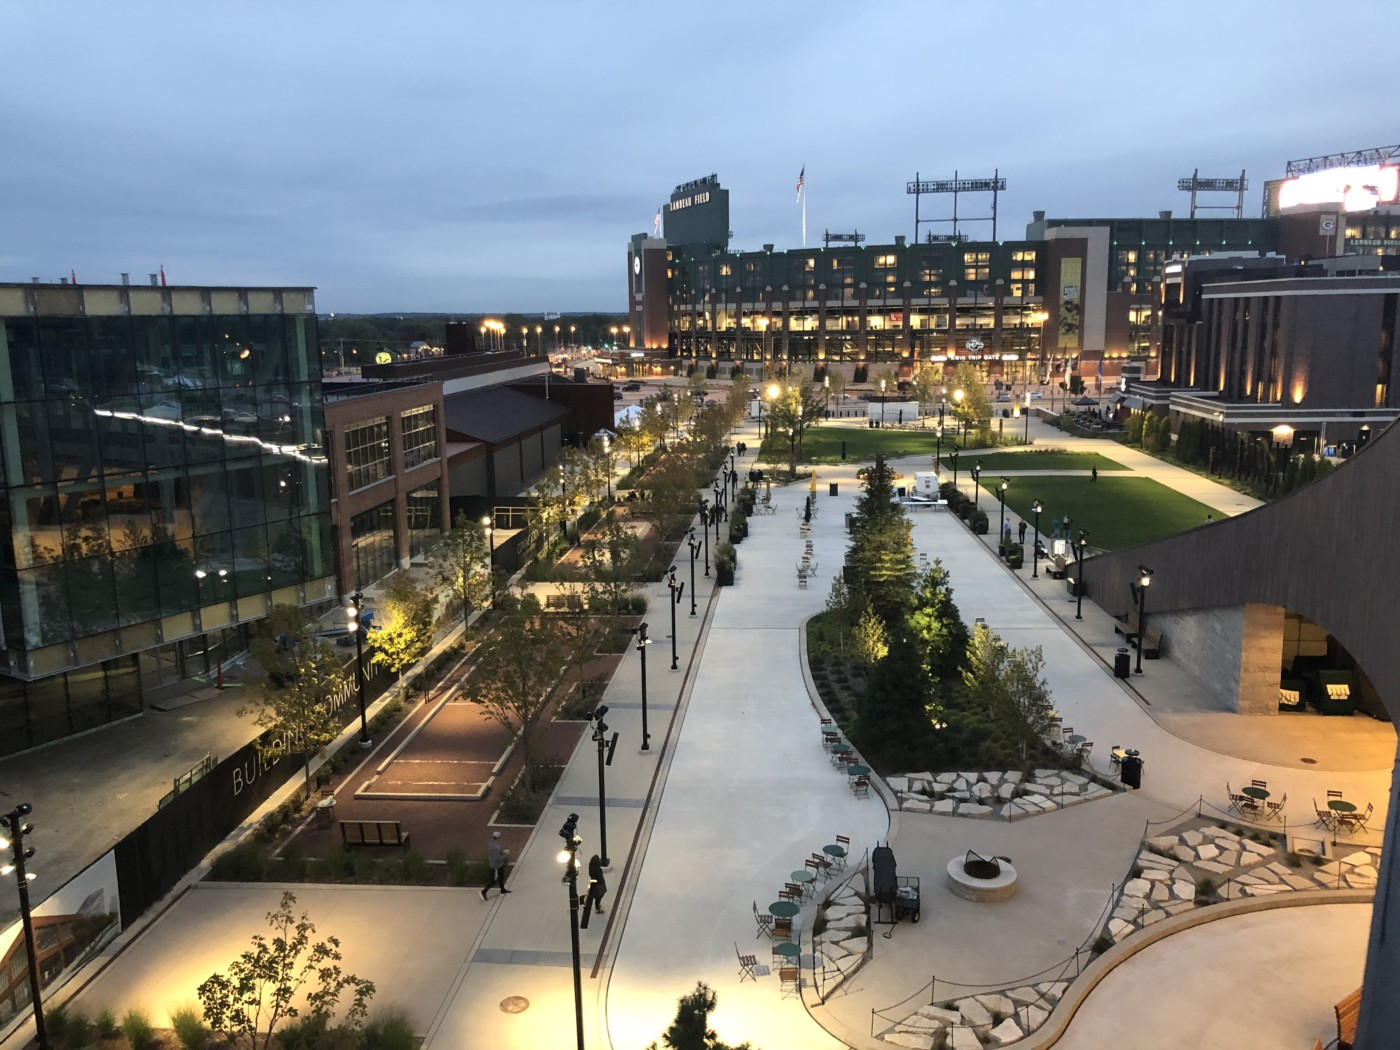 Visiting the Titletown District in Green Bay, Wisconsin